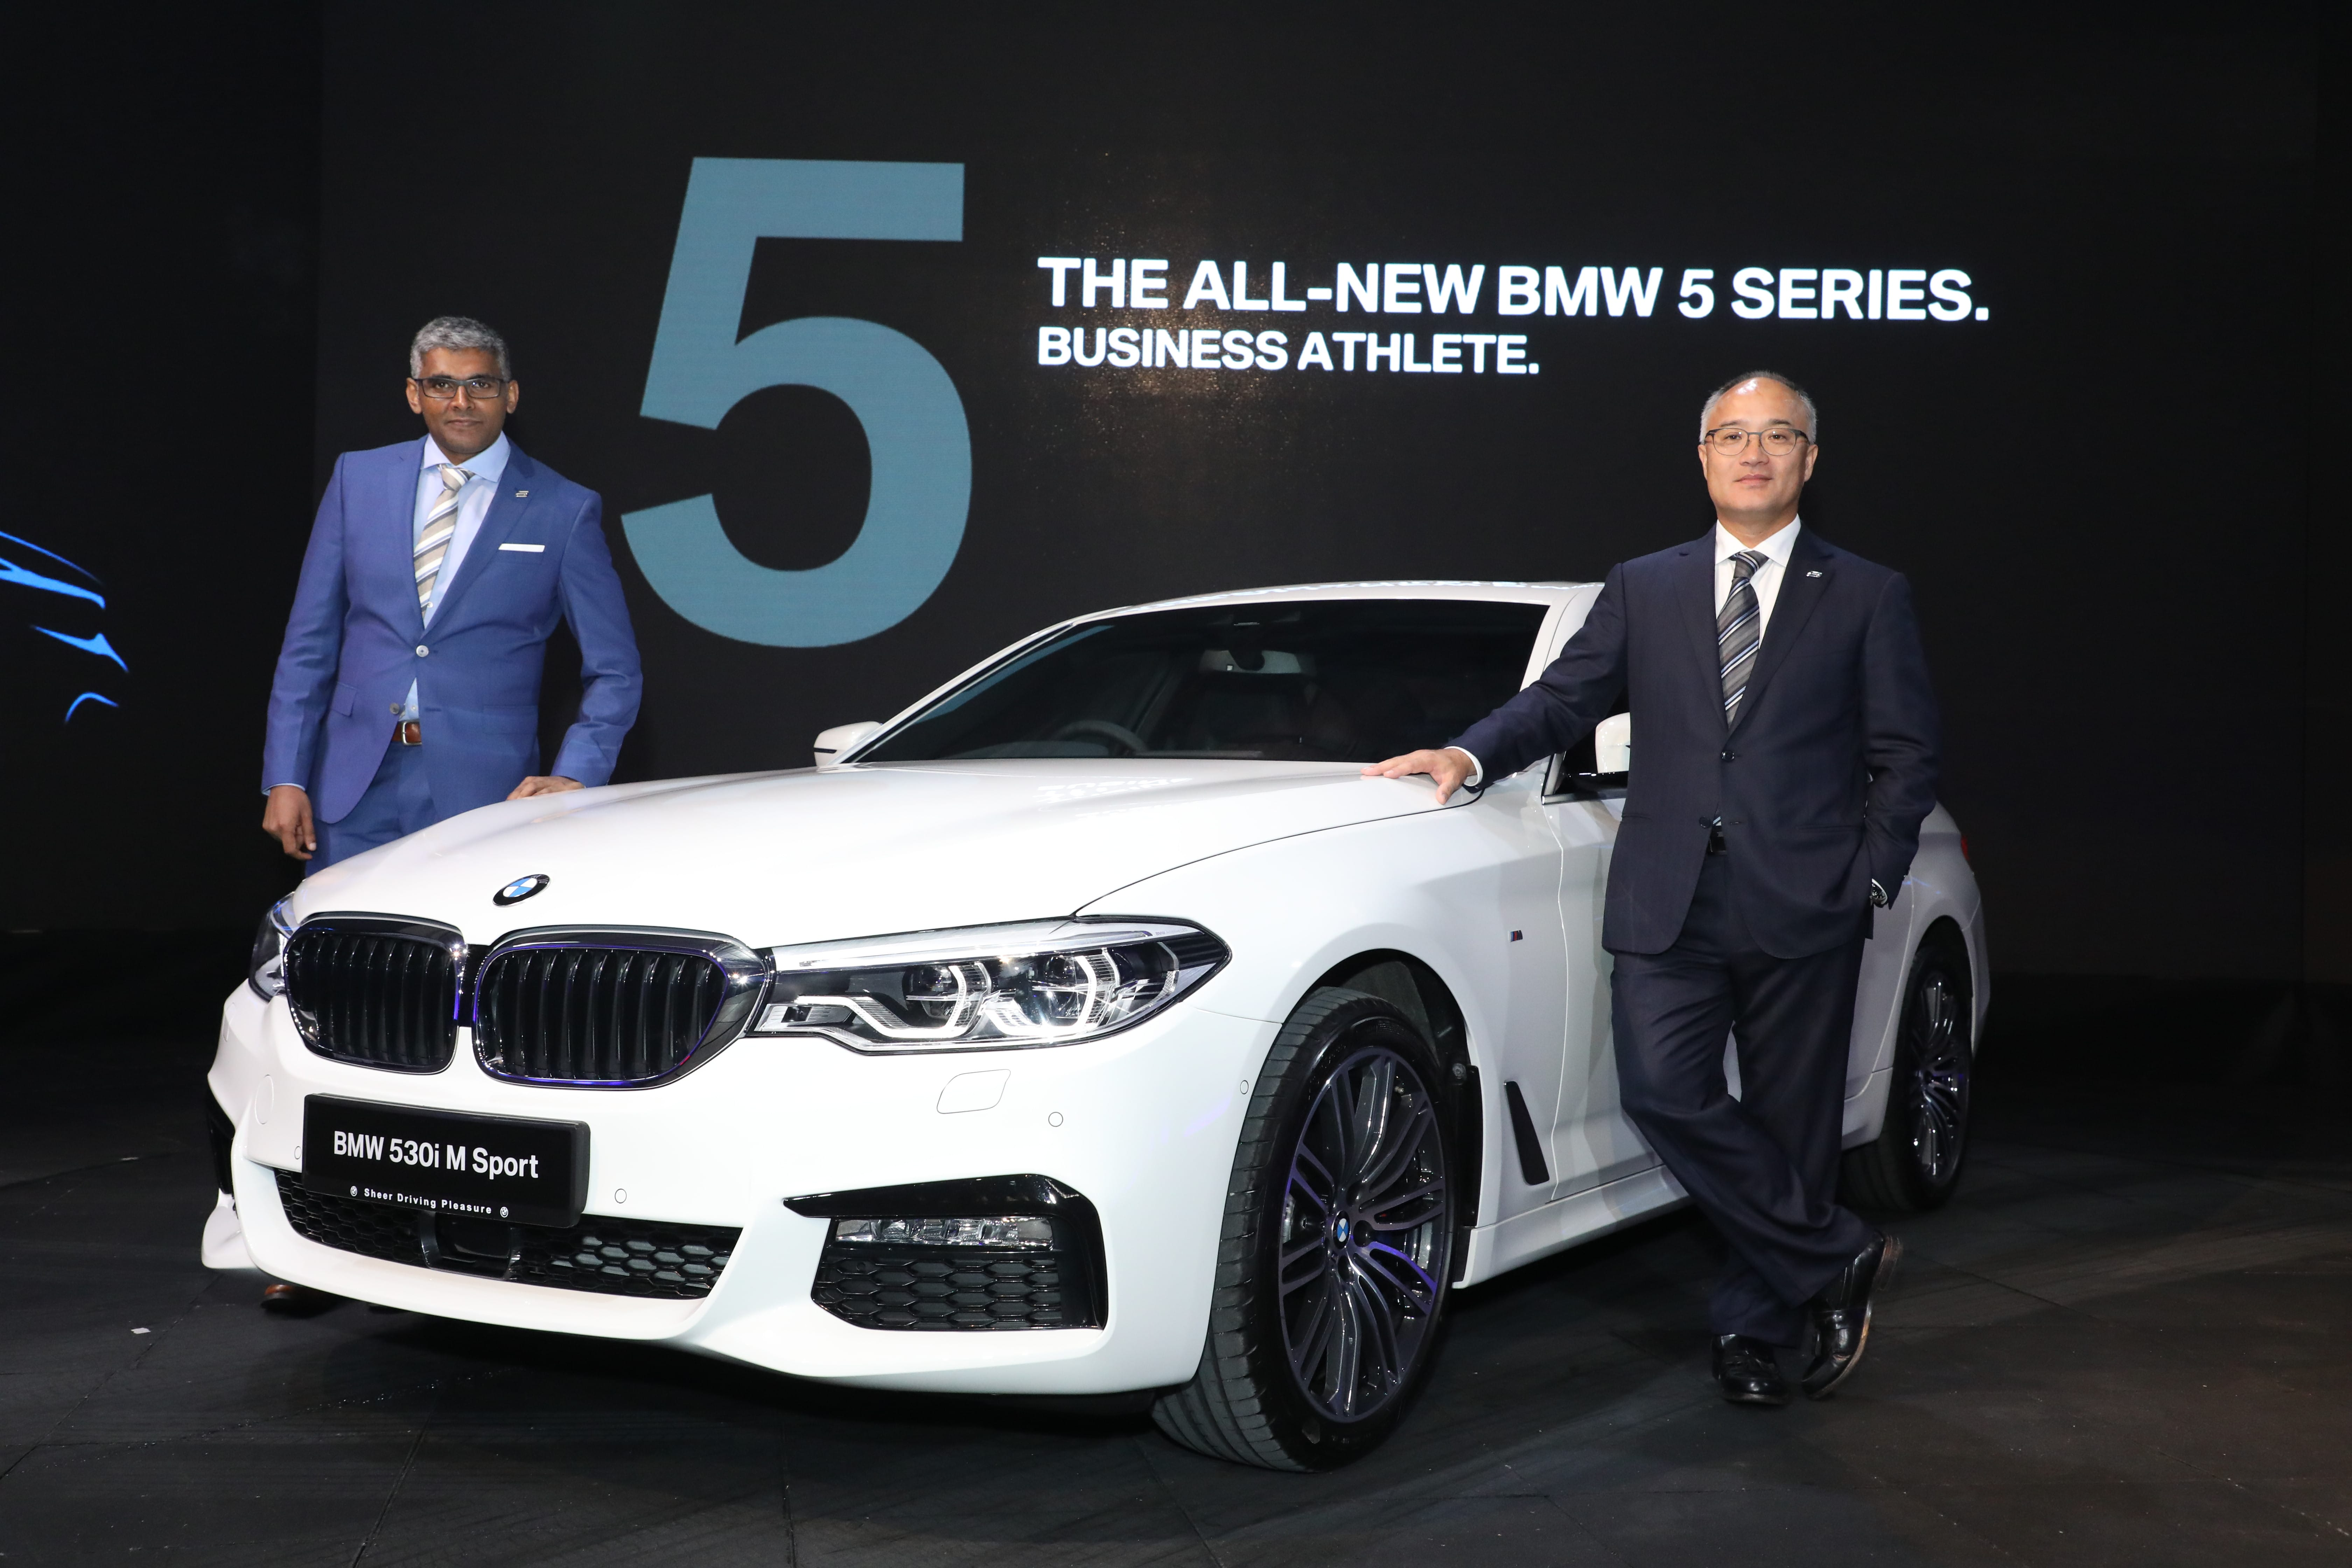 Bmw Group Ag Appoints Harald Hoelzl As New Managing Director Ceo